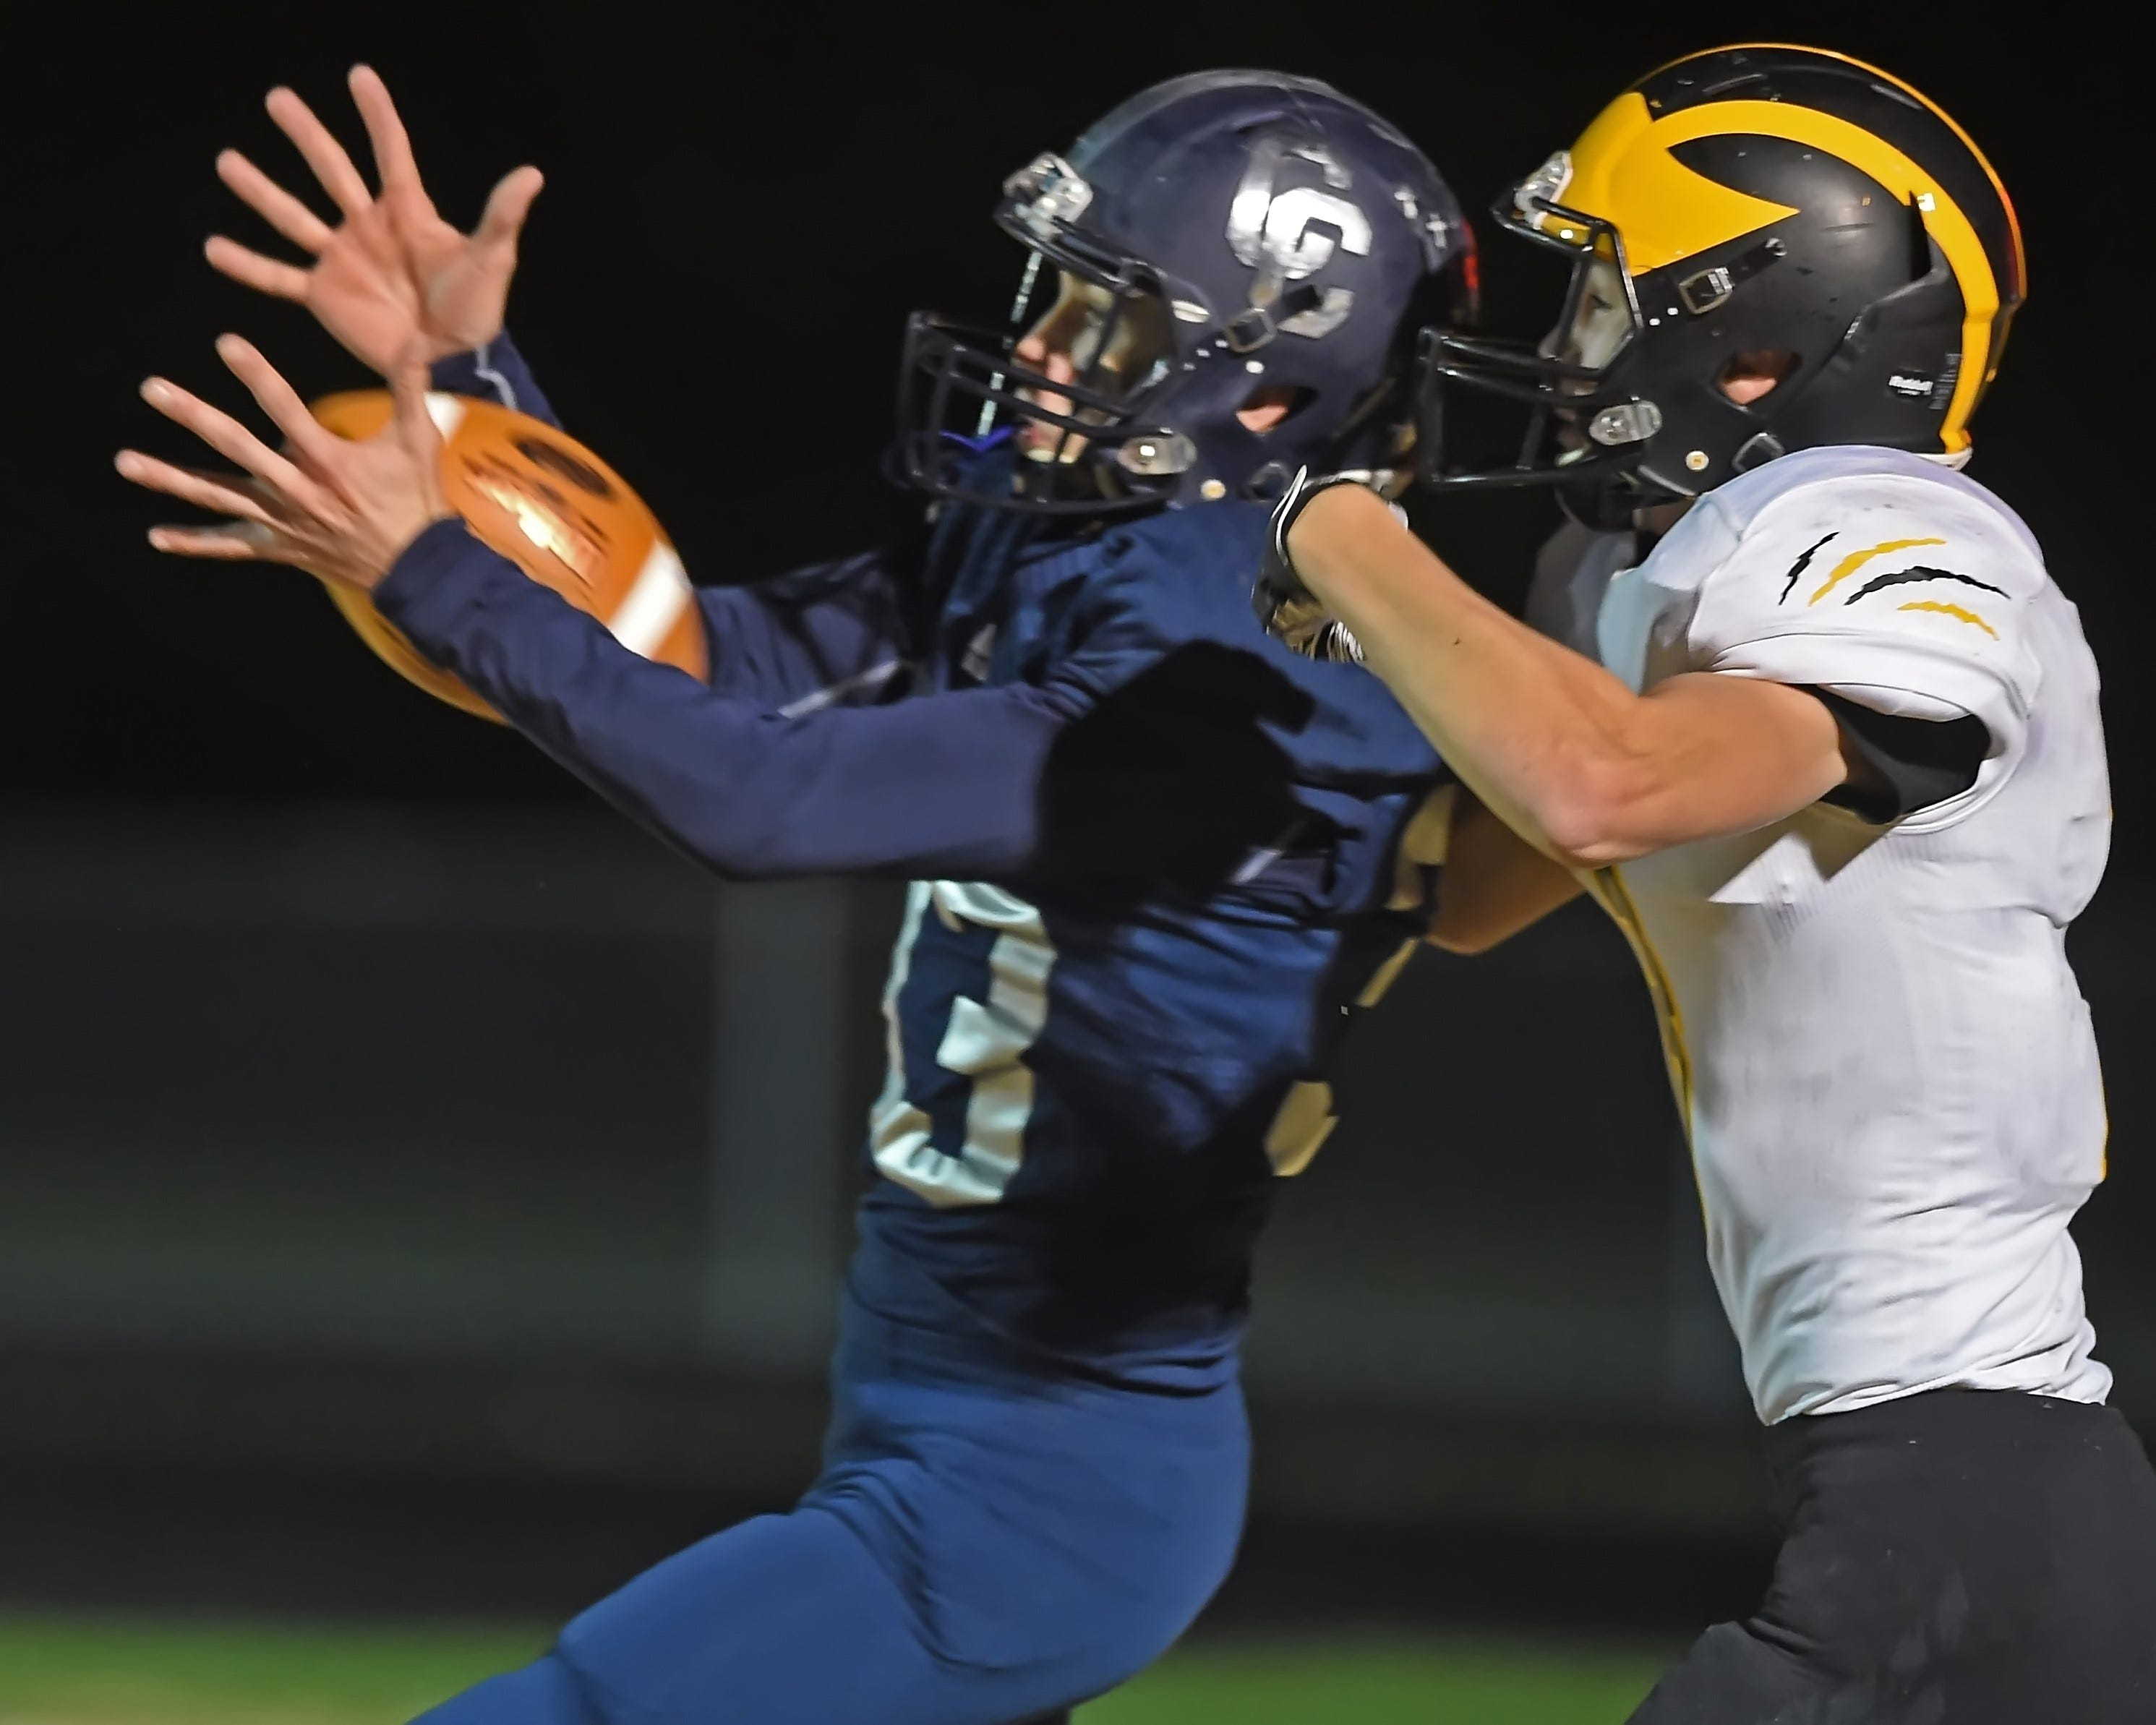 Central Catholic senior Mason Gray cuts in front of Pioneer's Calahan Kindley for an interception at the 2.